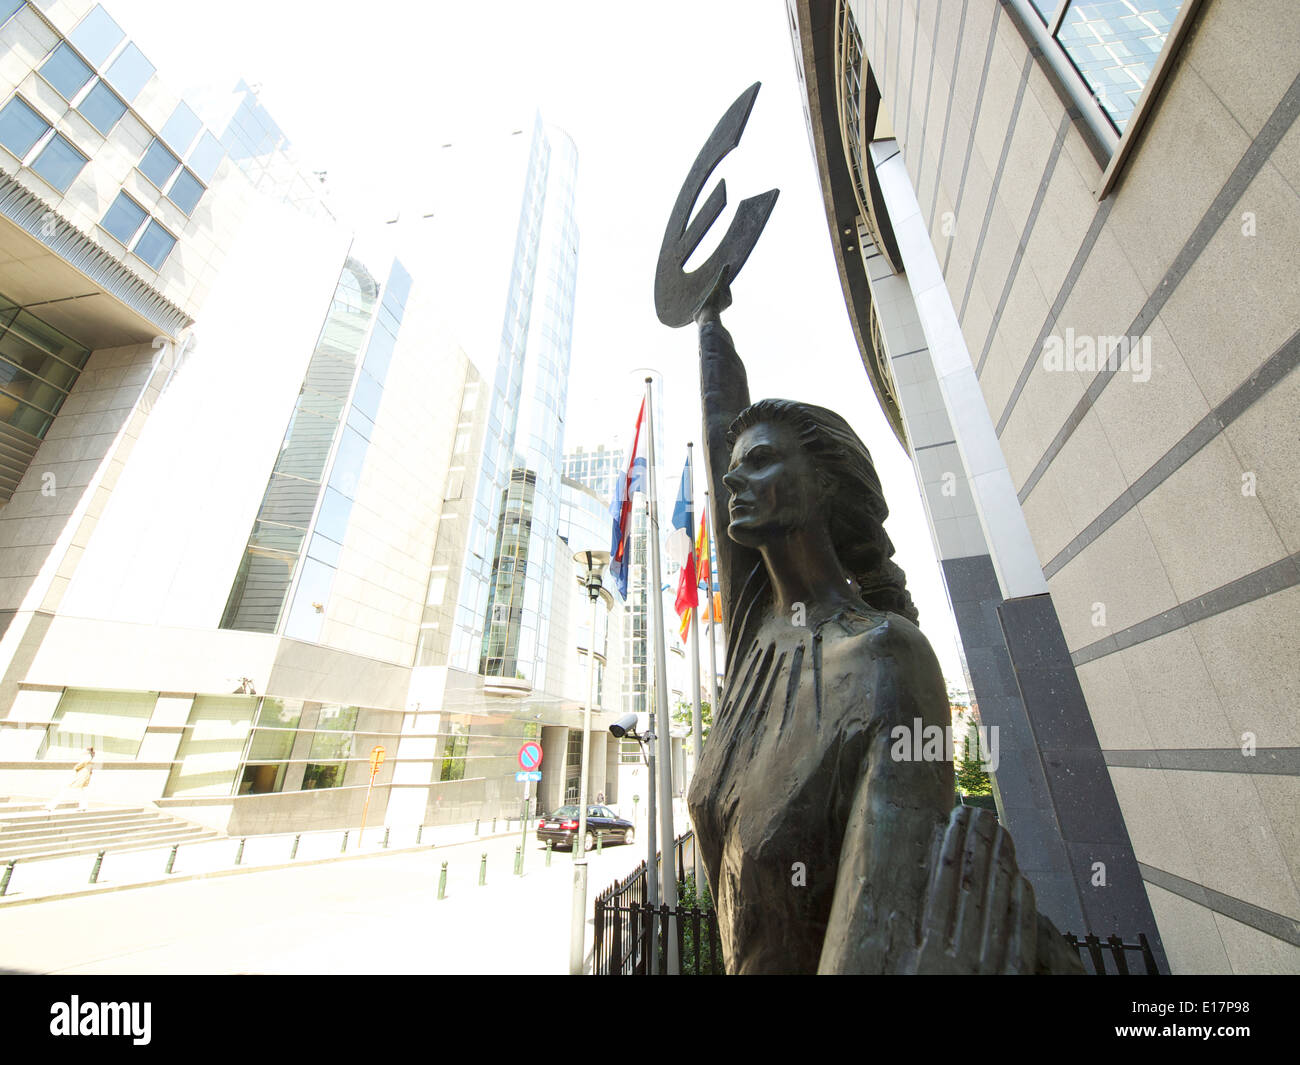 Statue of the goddess Europa with Euro currency symbol in front of the European Parliament in Brussels Belgium - Stock Image